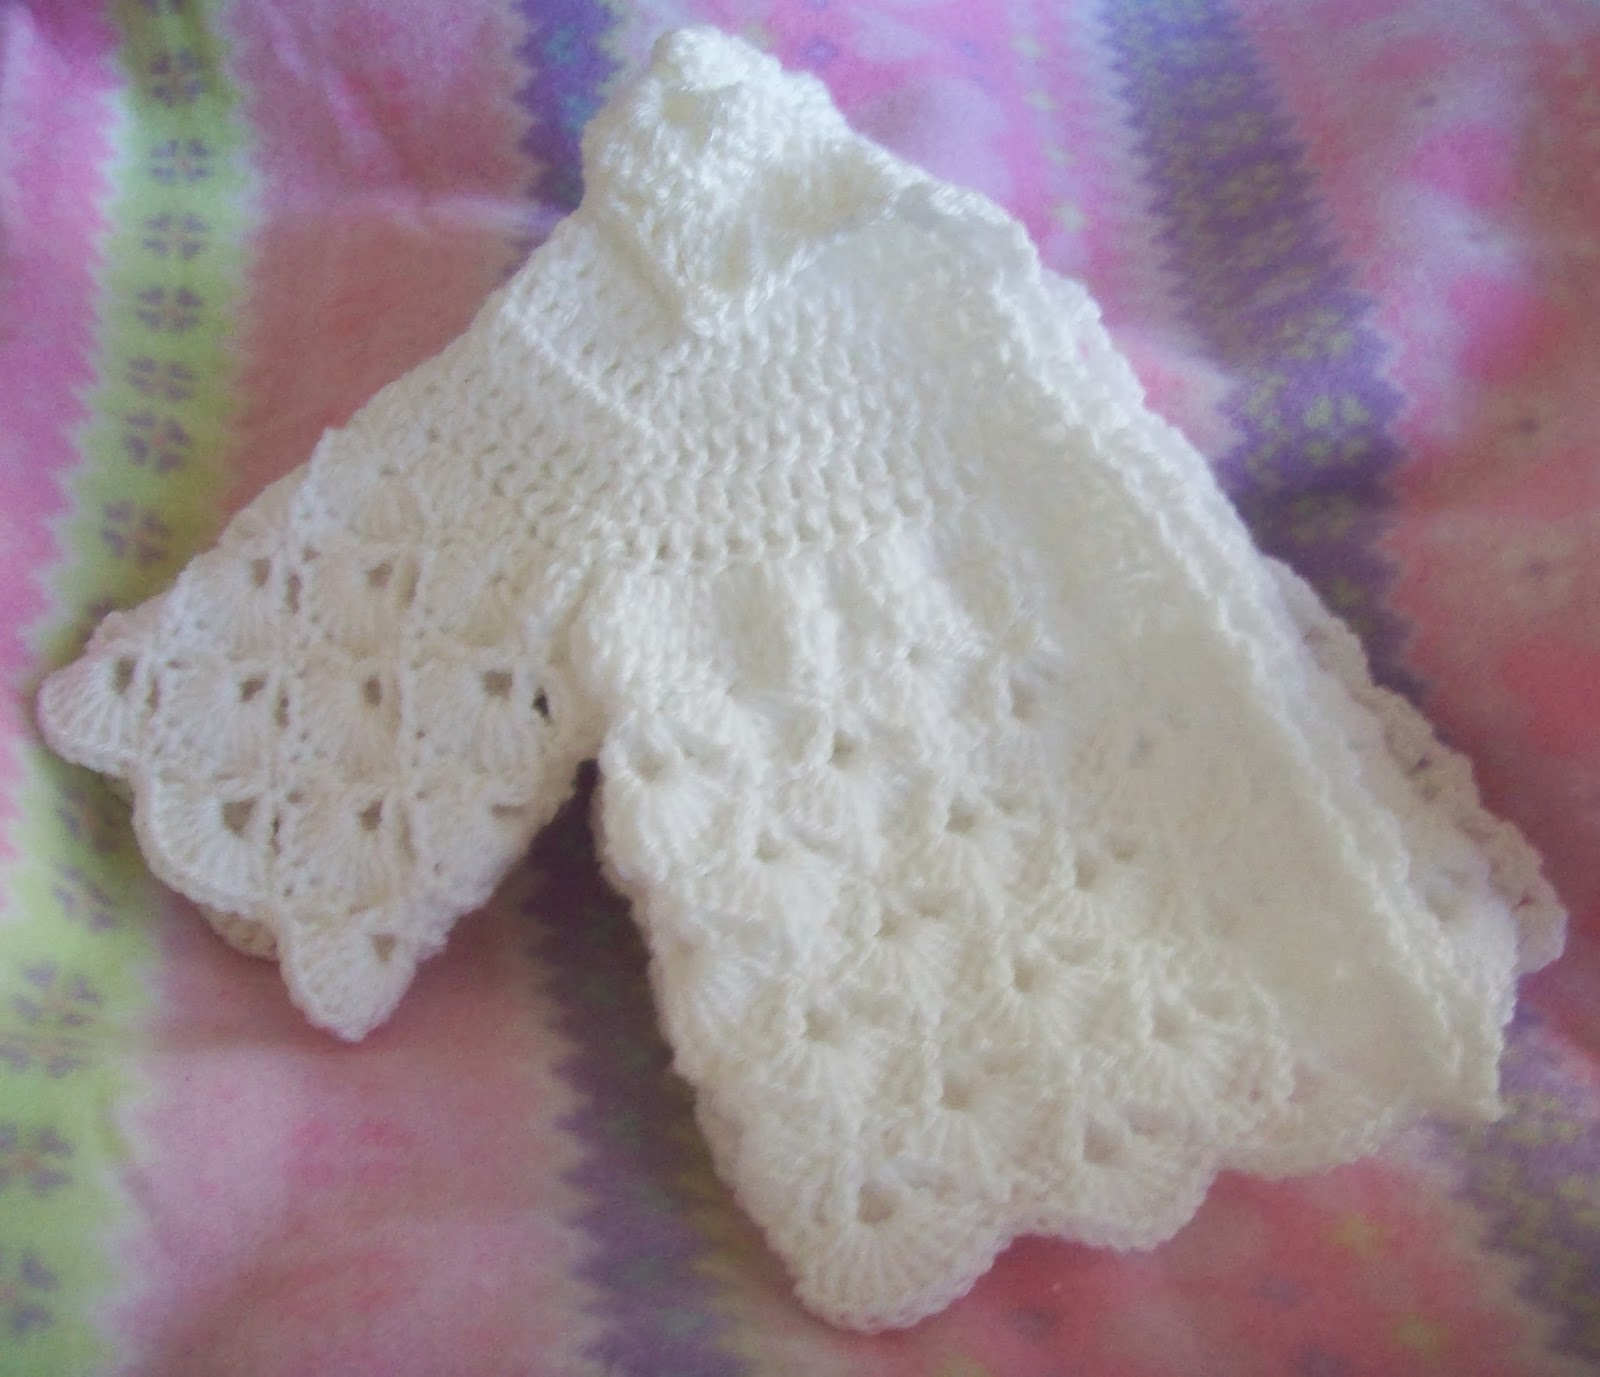 Crochet Newborn Baby Sweater Free Pattern : Free Crochet Patterns By Cats-Rockin-Crochet